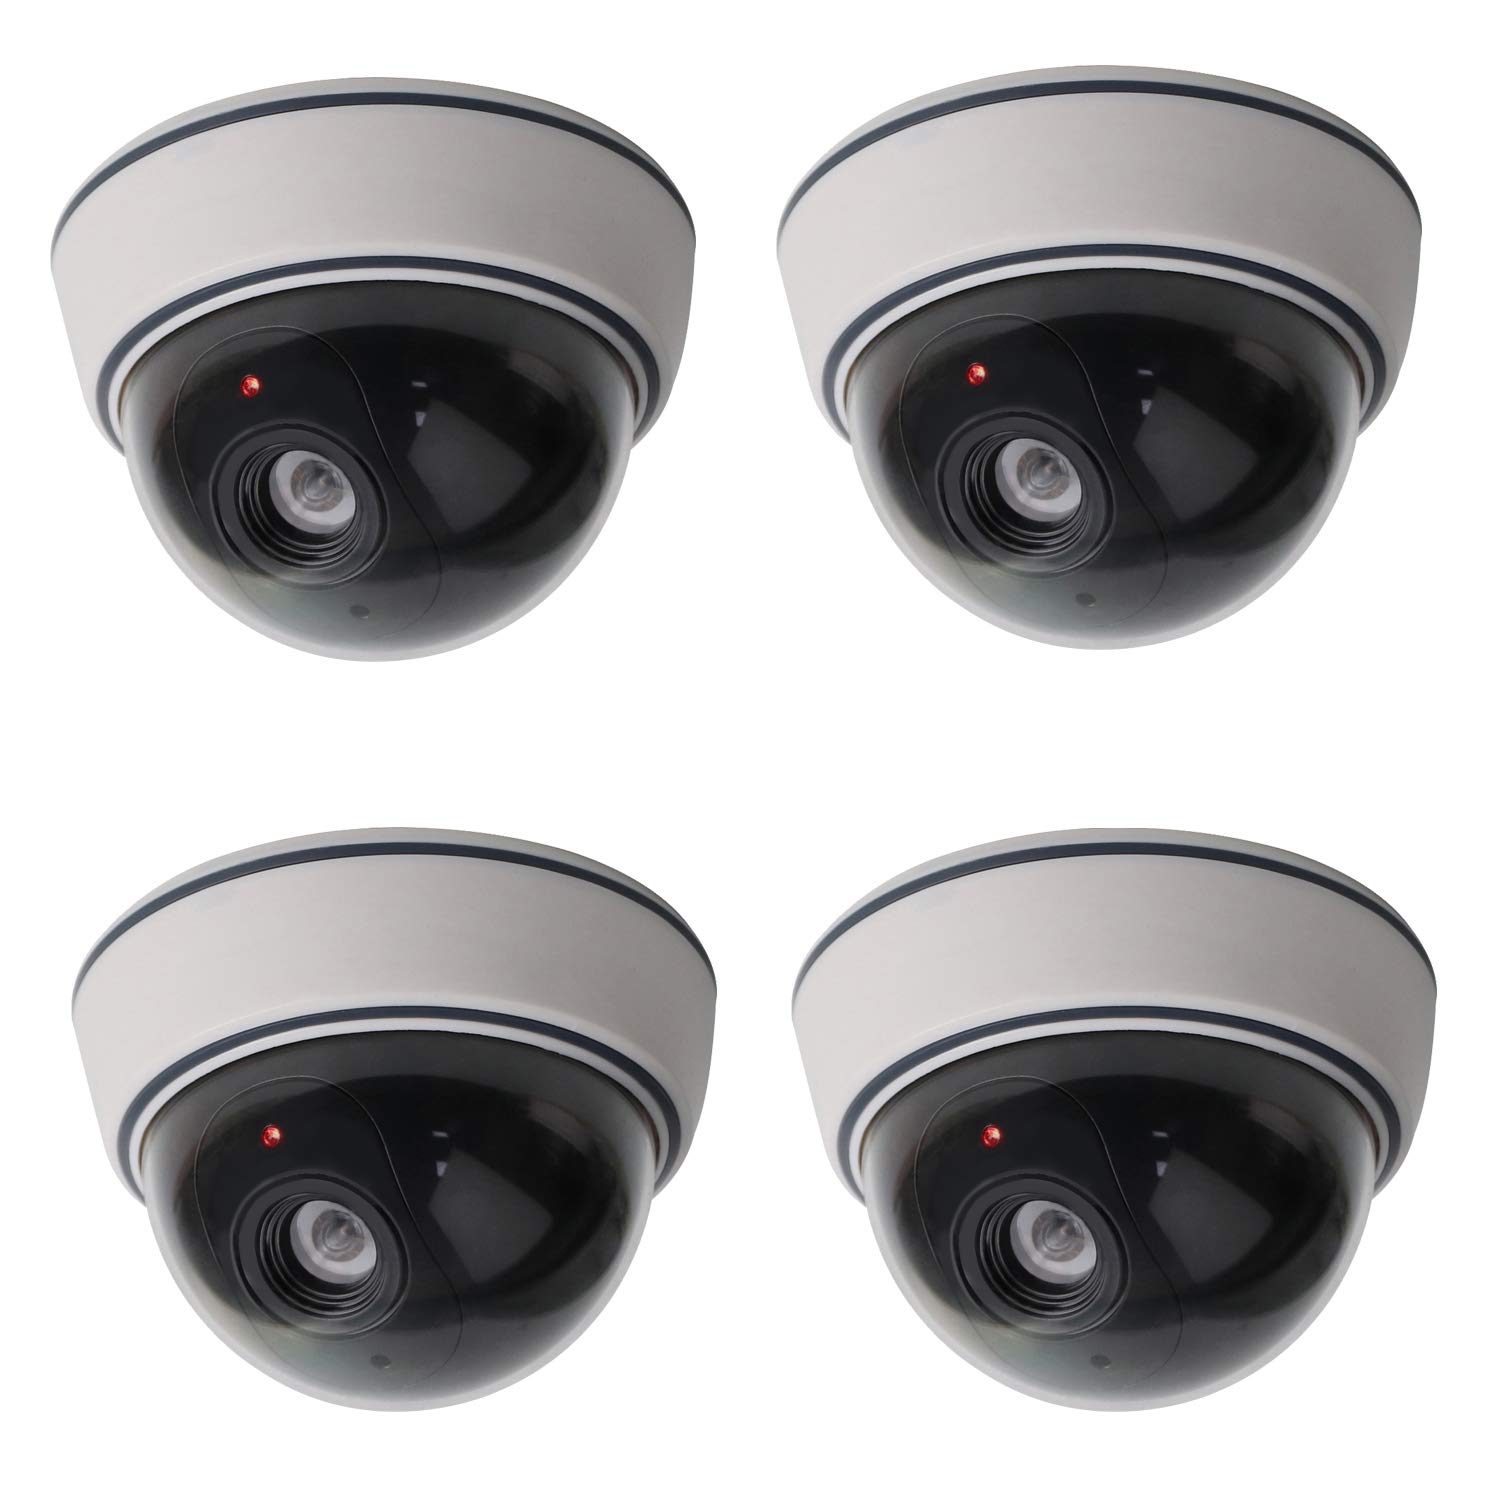 Lebote (4 Pack) Fake Dummy Security Camera CCTV Dome Camera with Flashing Red LED Light Dummy Surveillance Camera Outdoor Indoor Use for Home Security by Lebote Tec